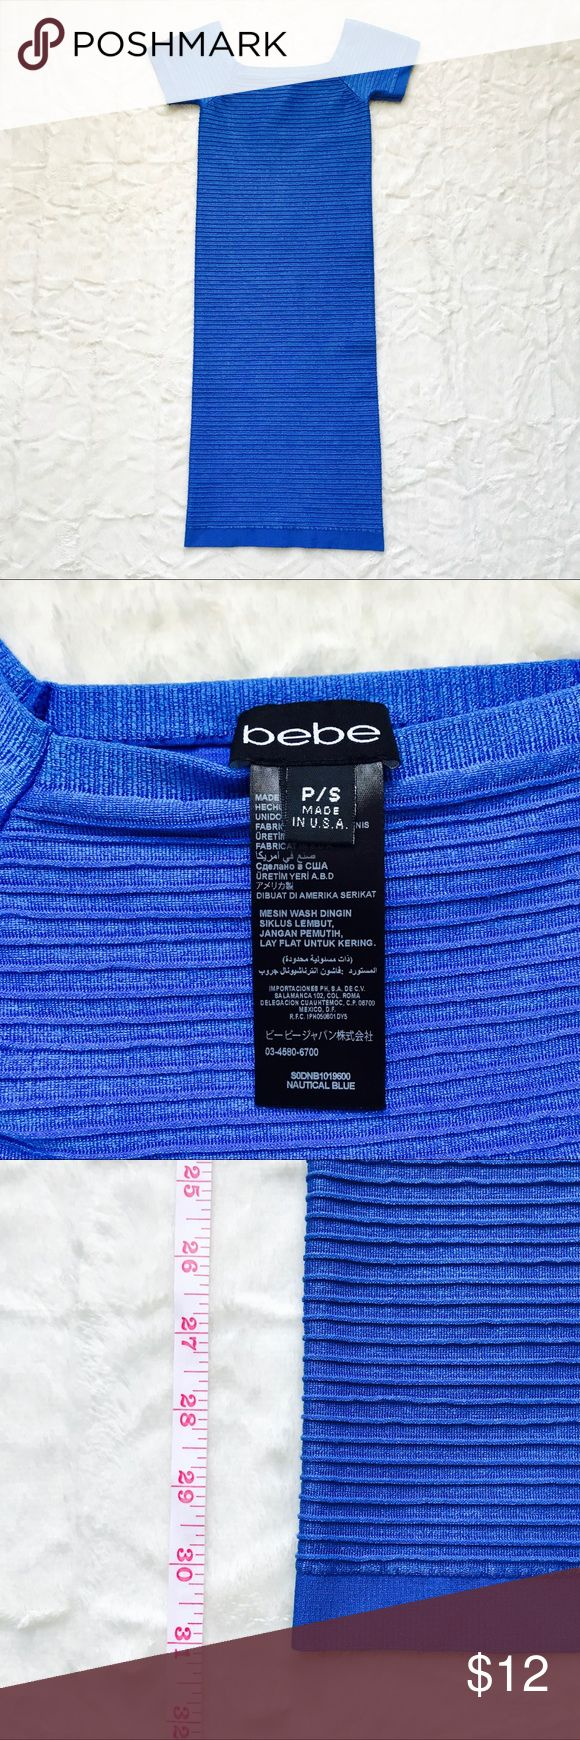 """bebe Ribbed Bodycon Dress with Cap Sleeves bebe Ribbed Bodycon Dress with Cap Sleeves  Can be worn on or off the shoulder  Size: S (stretchy) Color: Nautical Blue Condition: Like New  Full length: 31"""" bebe Dresses Mini"""